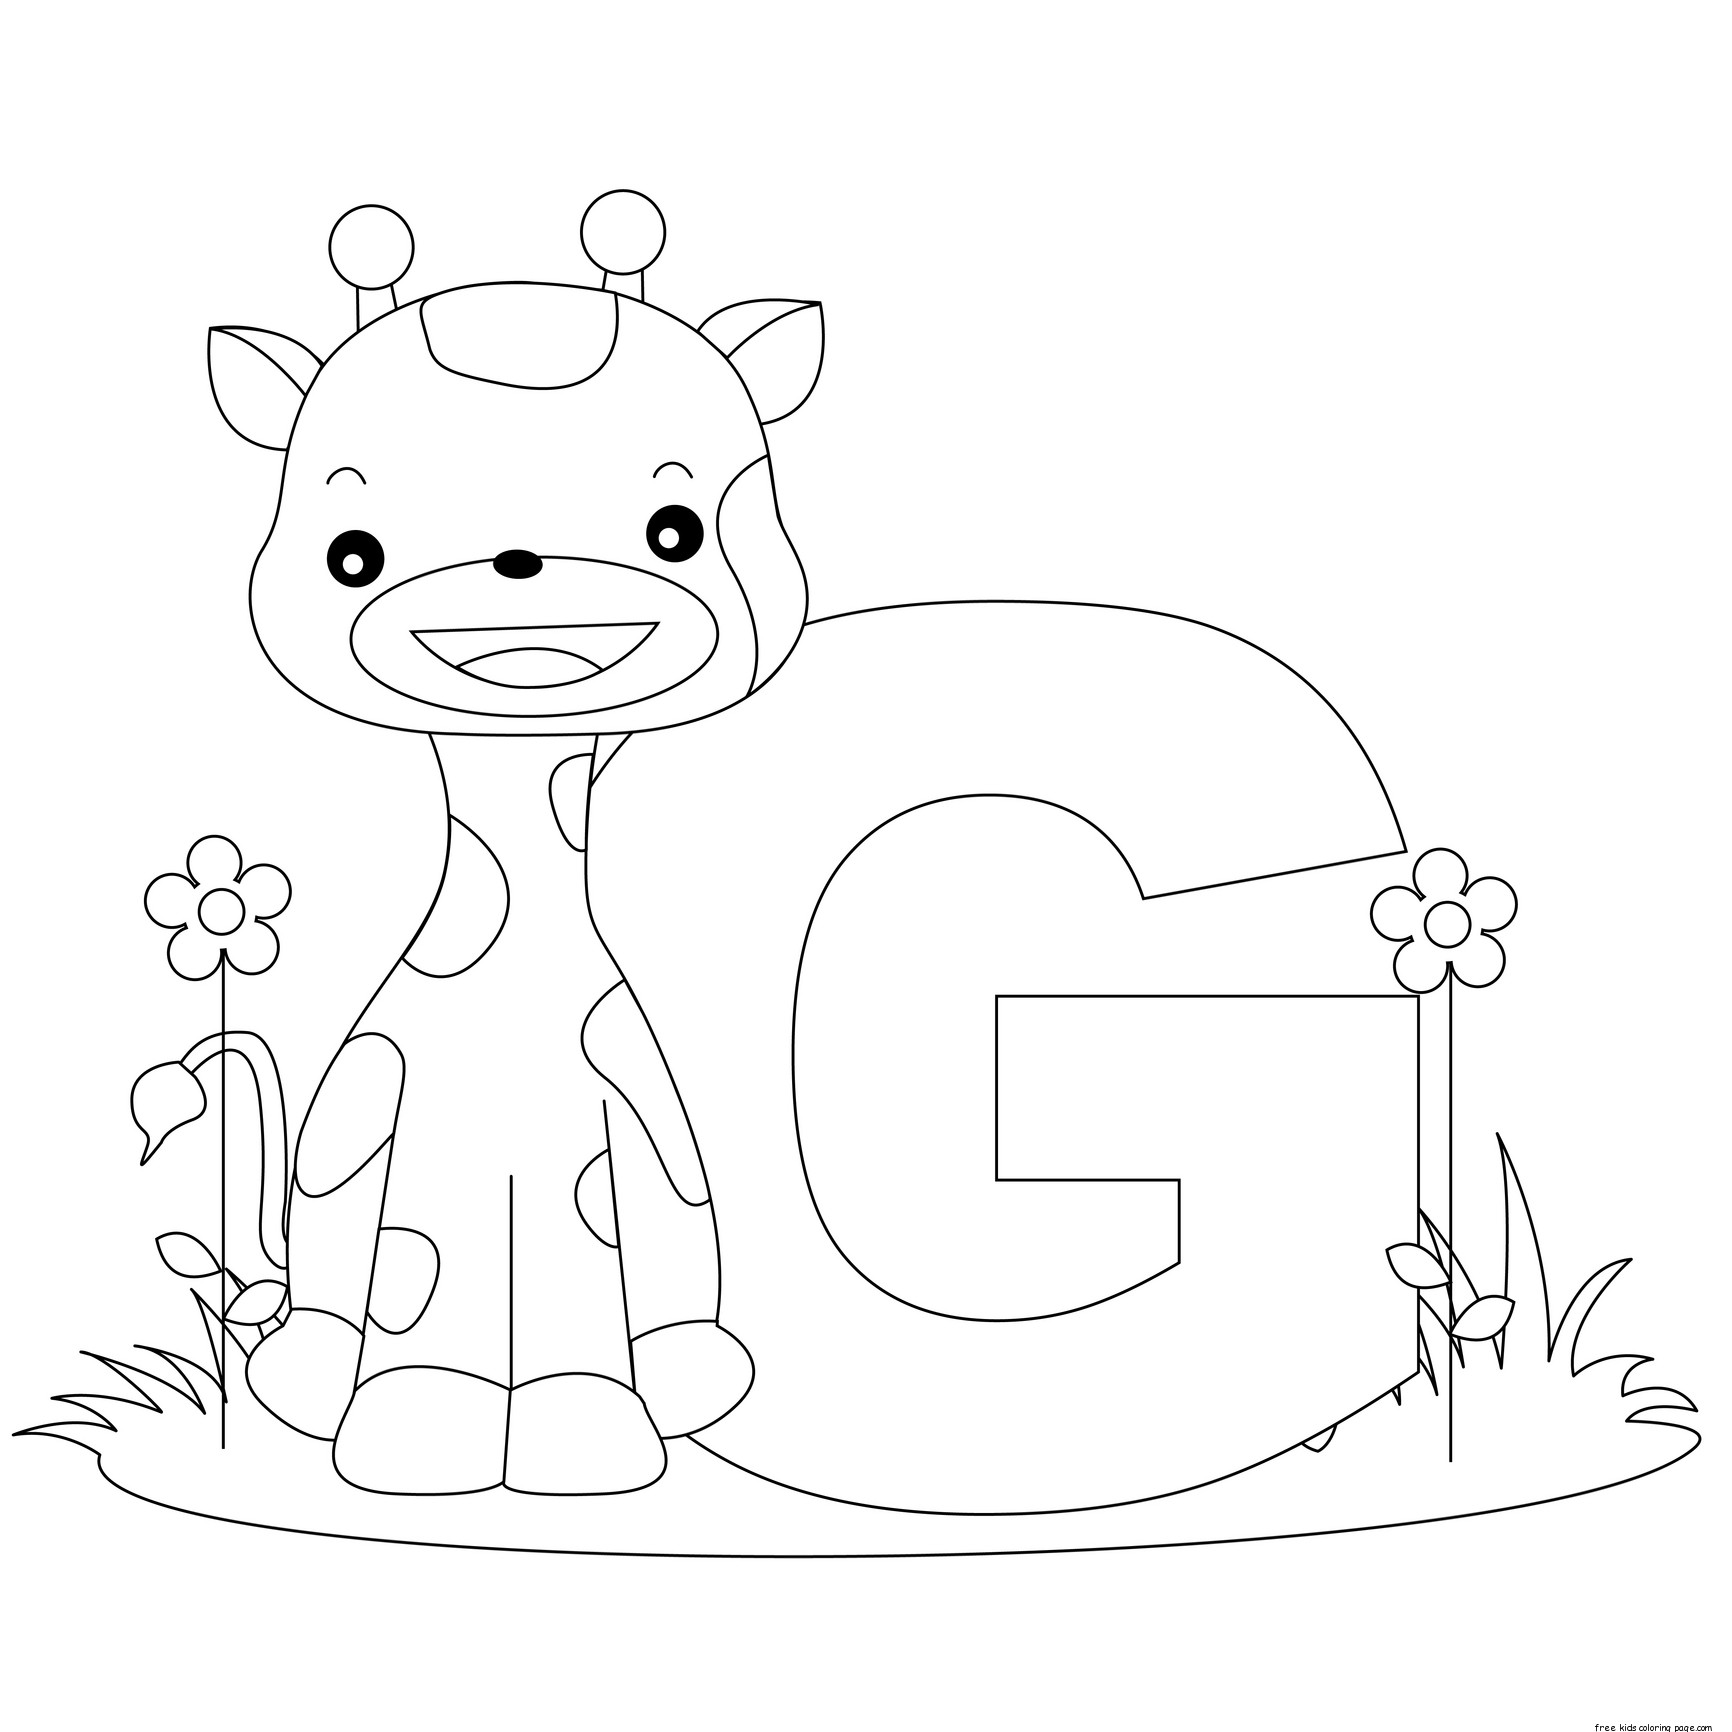 Spanish Alphabet Coloring Pages Printable : Alphabet letter g for preschool activities worksheetsfree